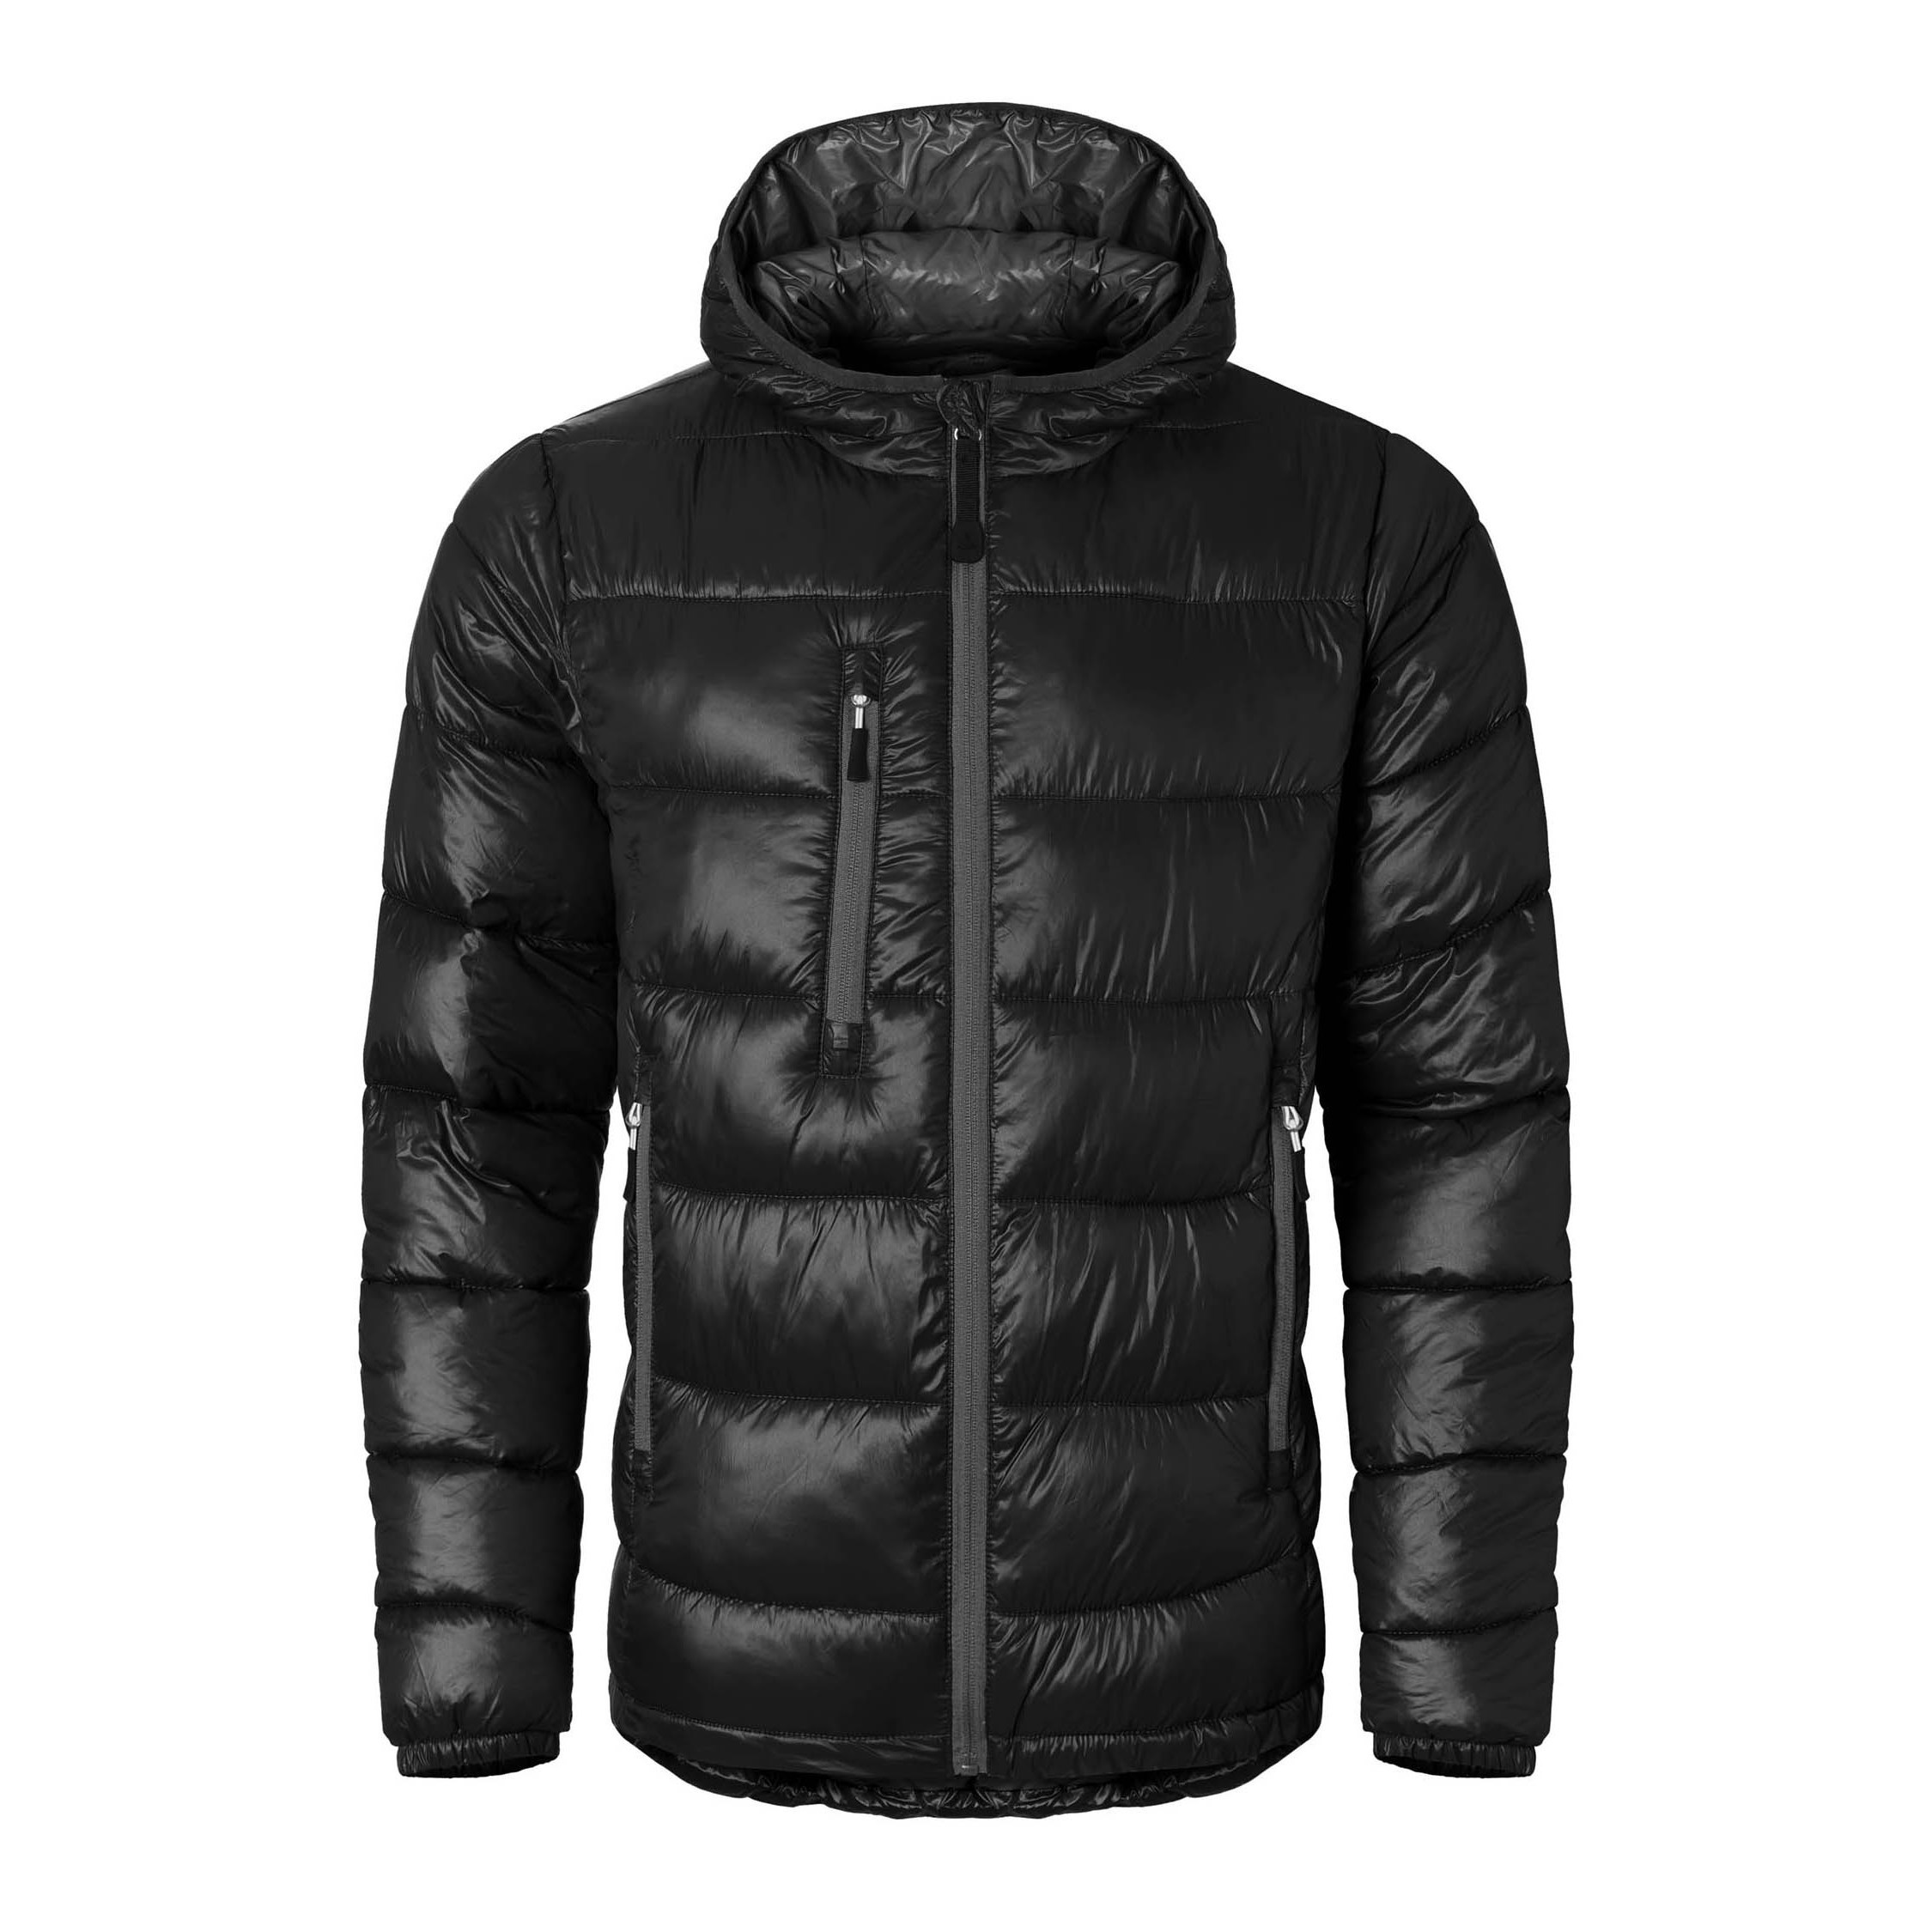 Matterhorn MH-218 Winter Quilted Jacket Black 3XL